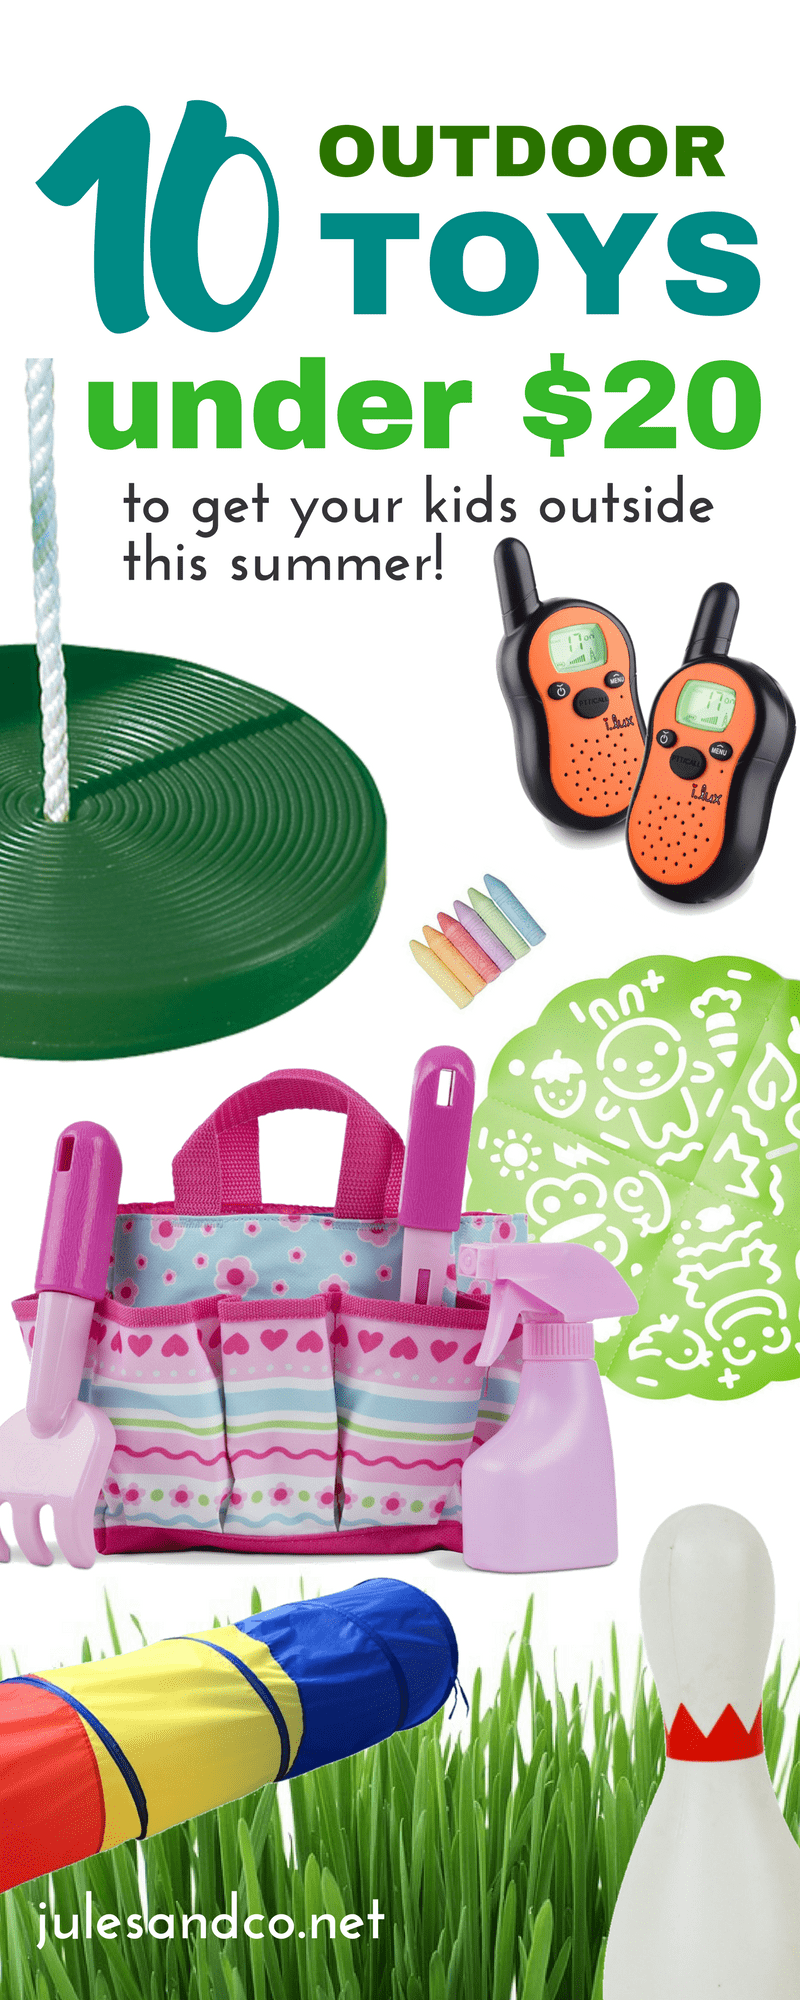 Make this summer one to remember! Get your family outside with these affordable summer outdoor toys for kids. Your kids will love these outside activities this summer! Click through for my top frugal finds!